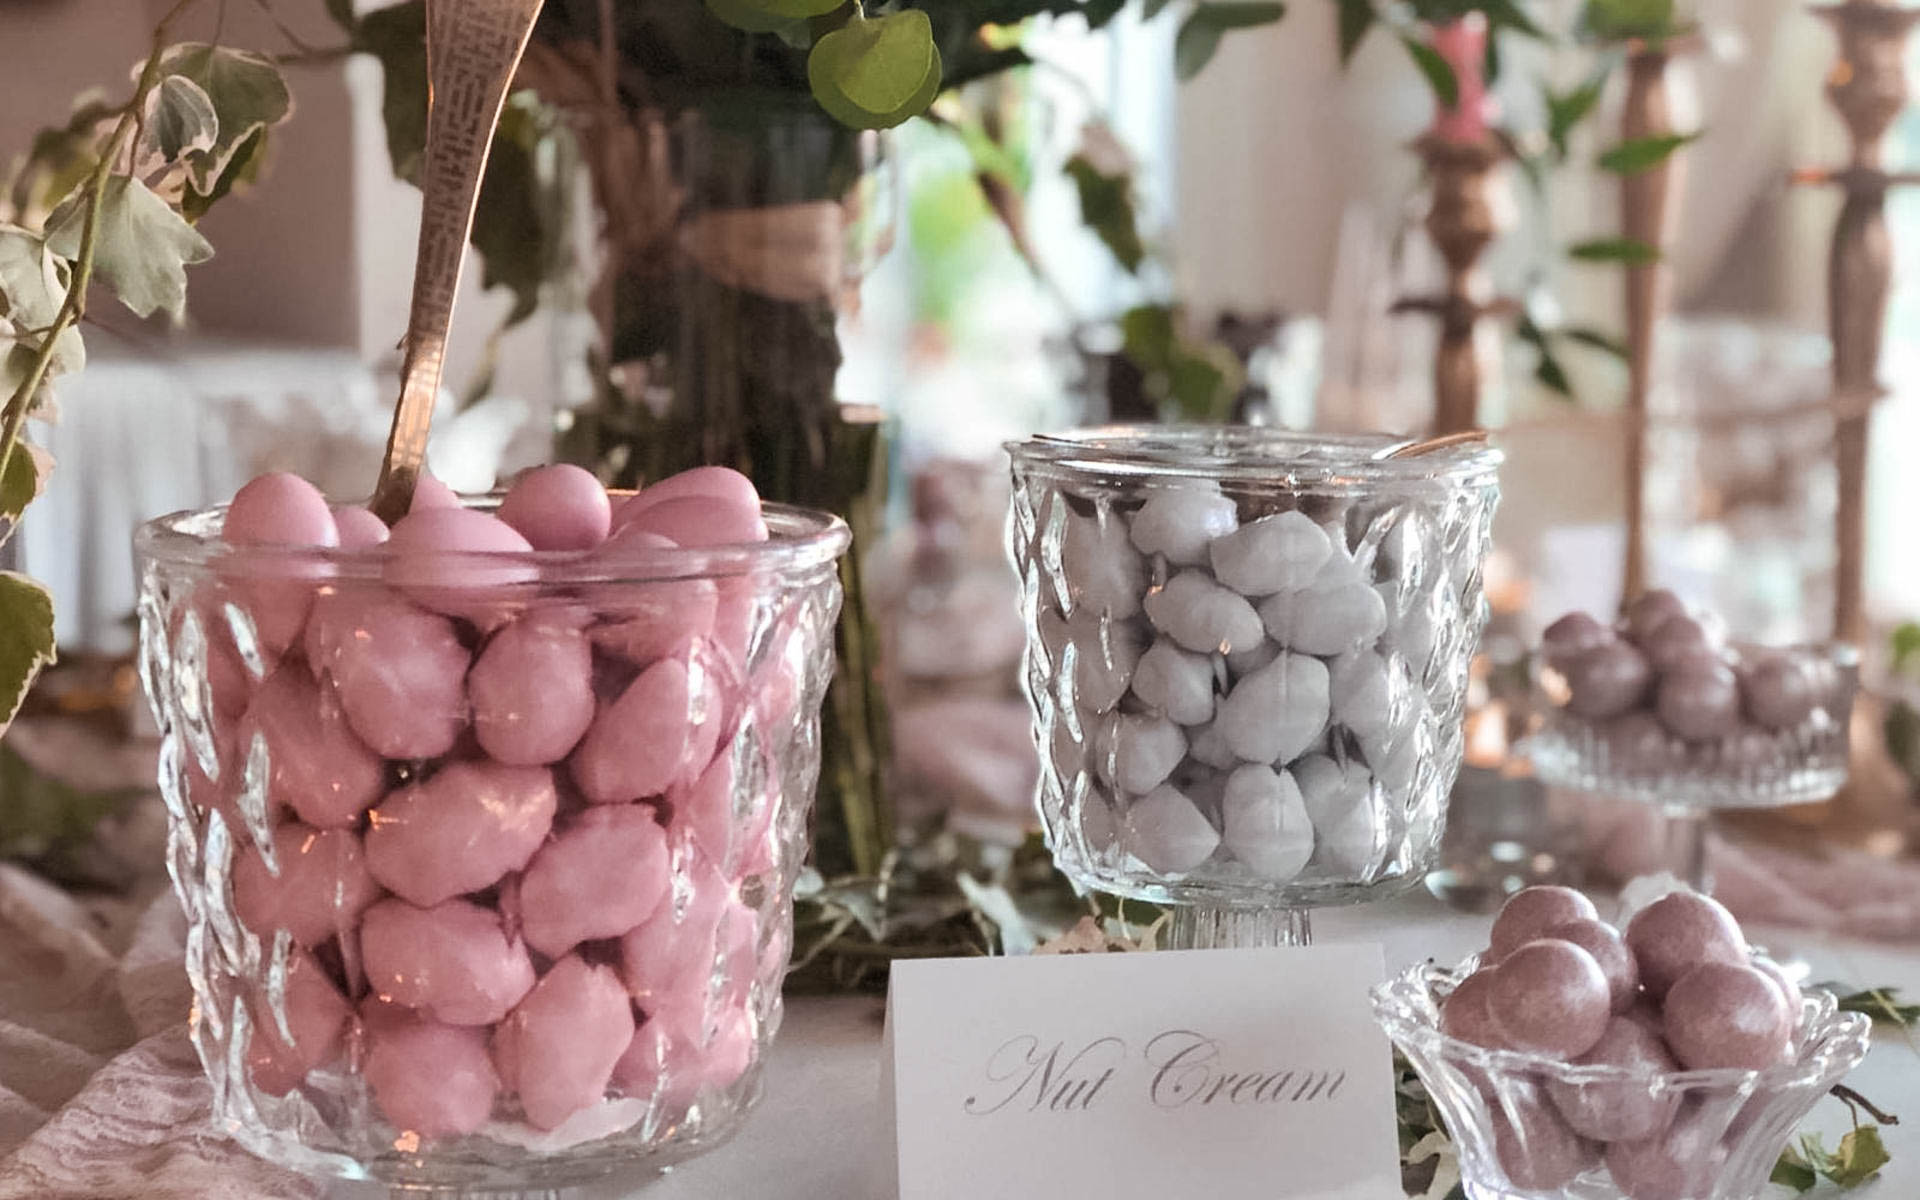 White House Events - White House Events - confetti-6